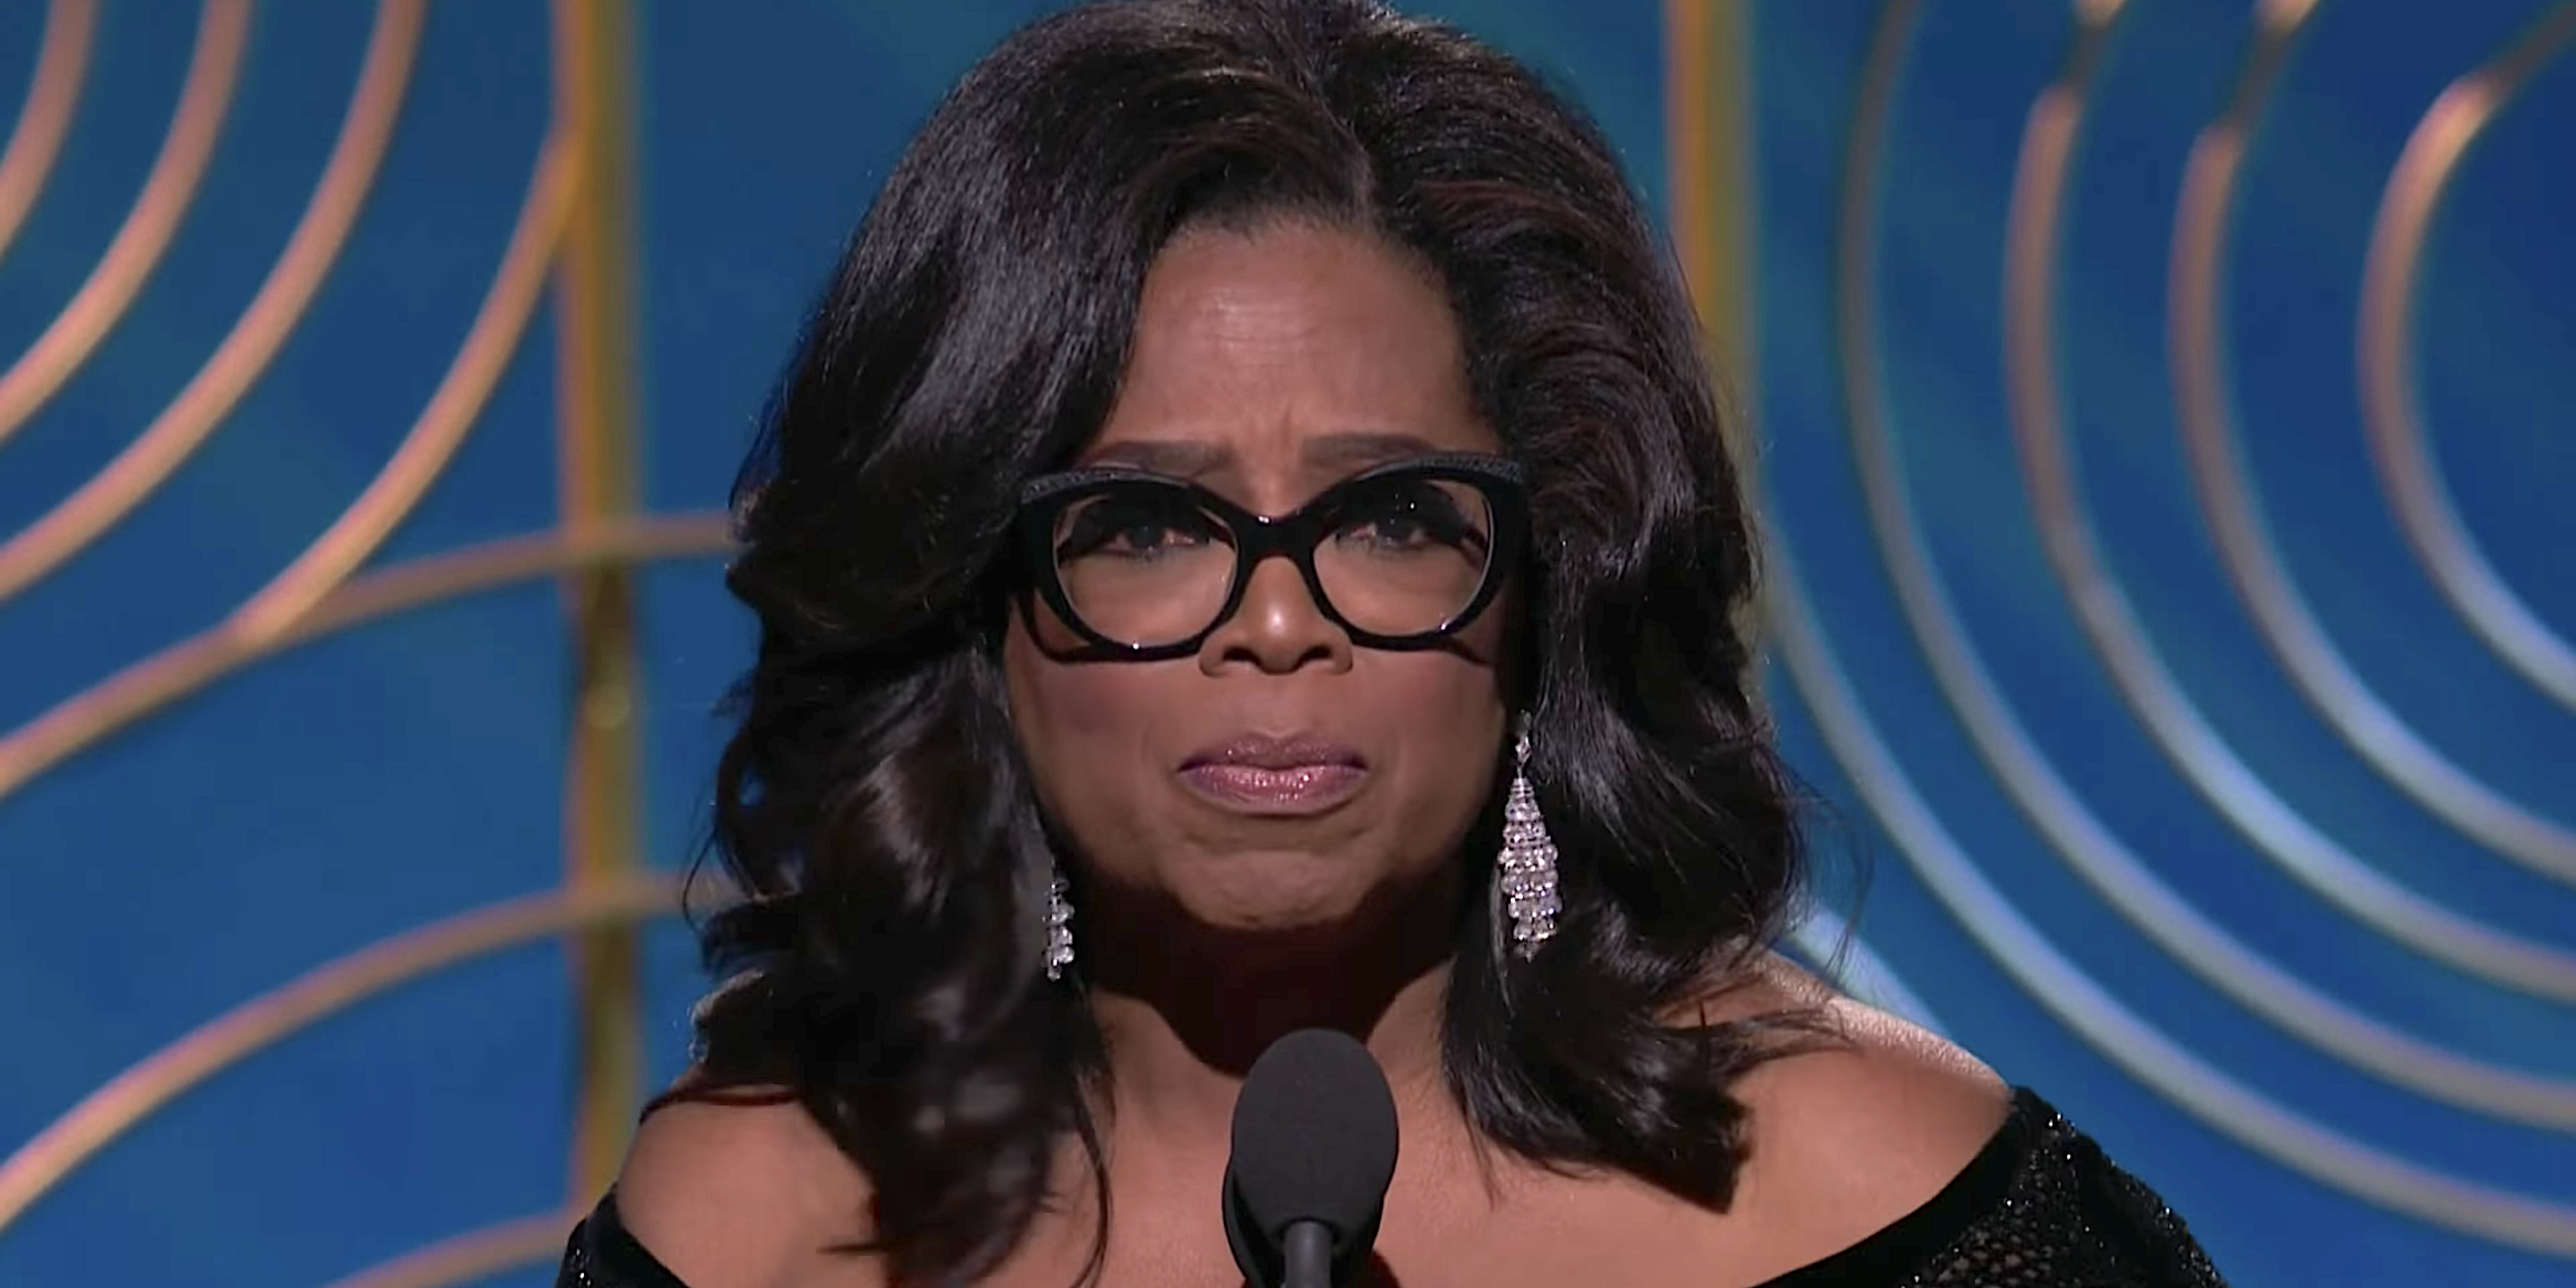 Oprah Winfrey giving a speech at the 2018 Golden Globes